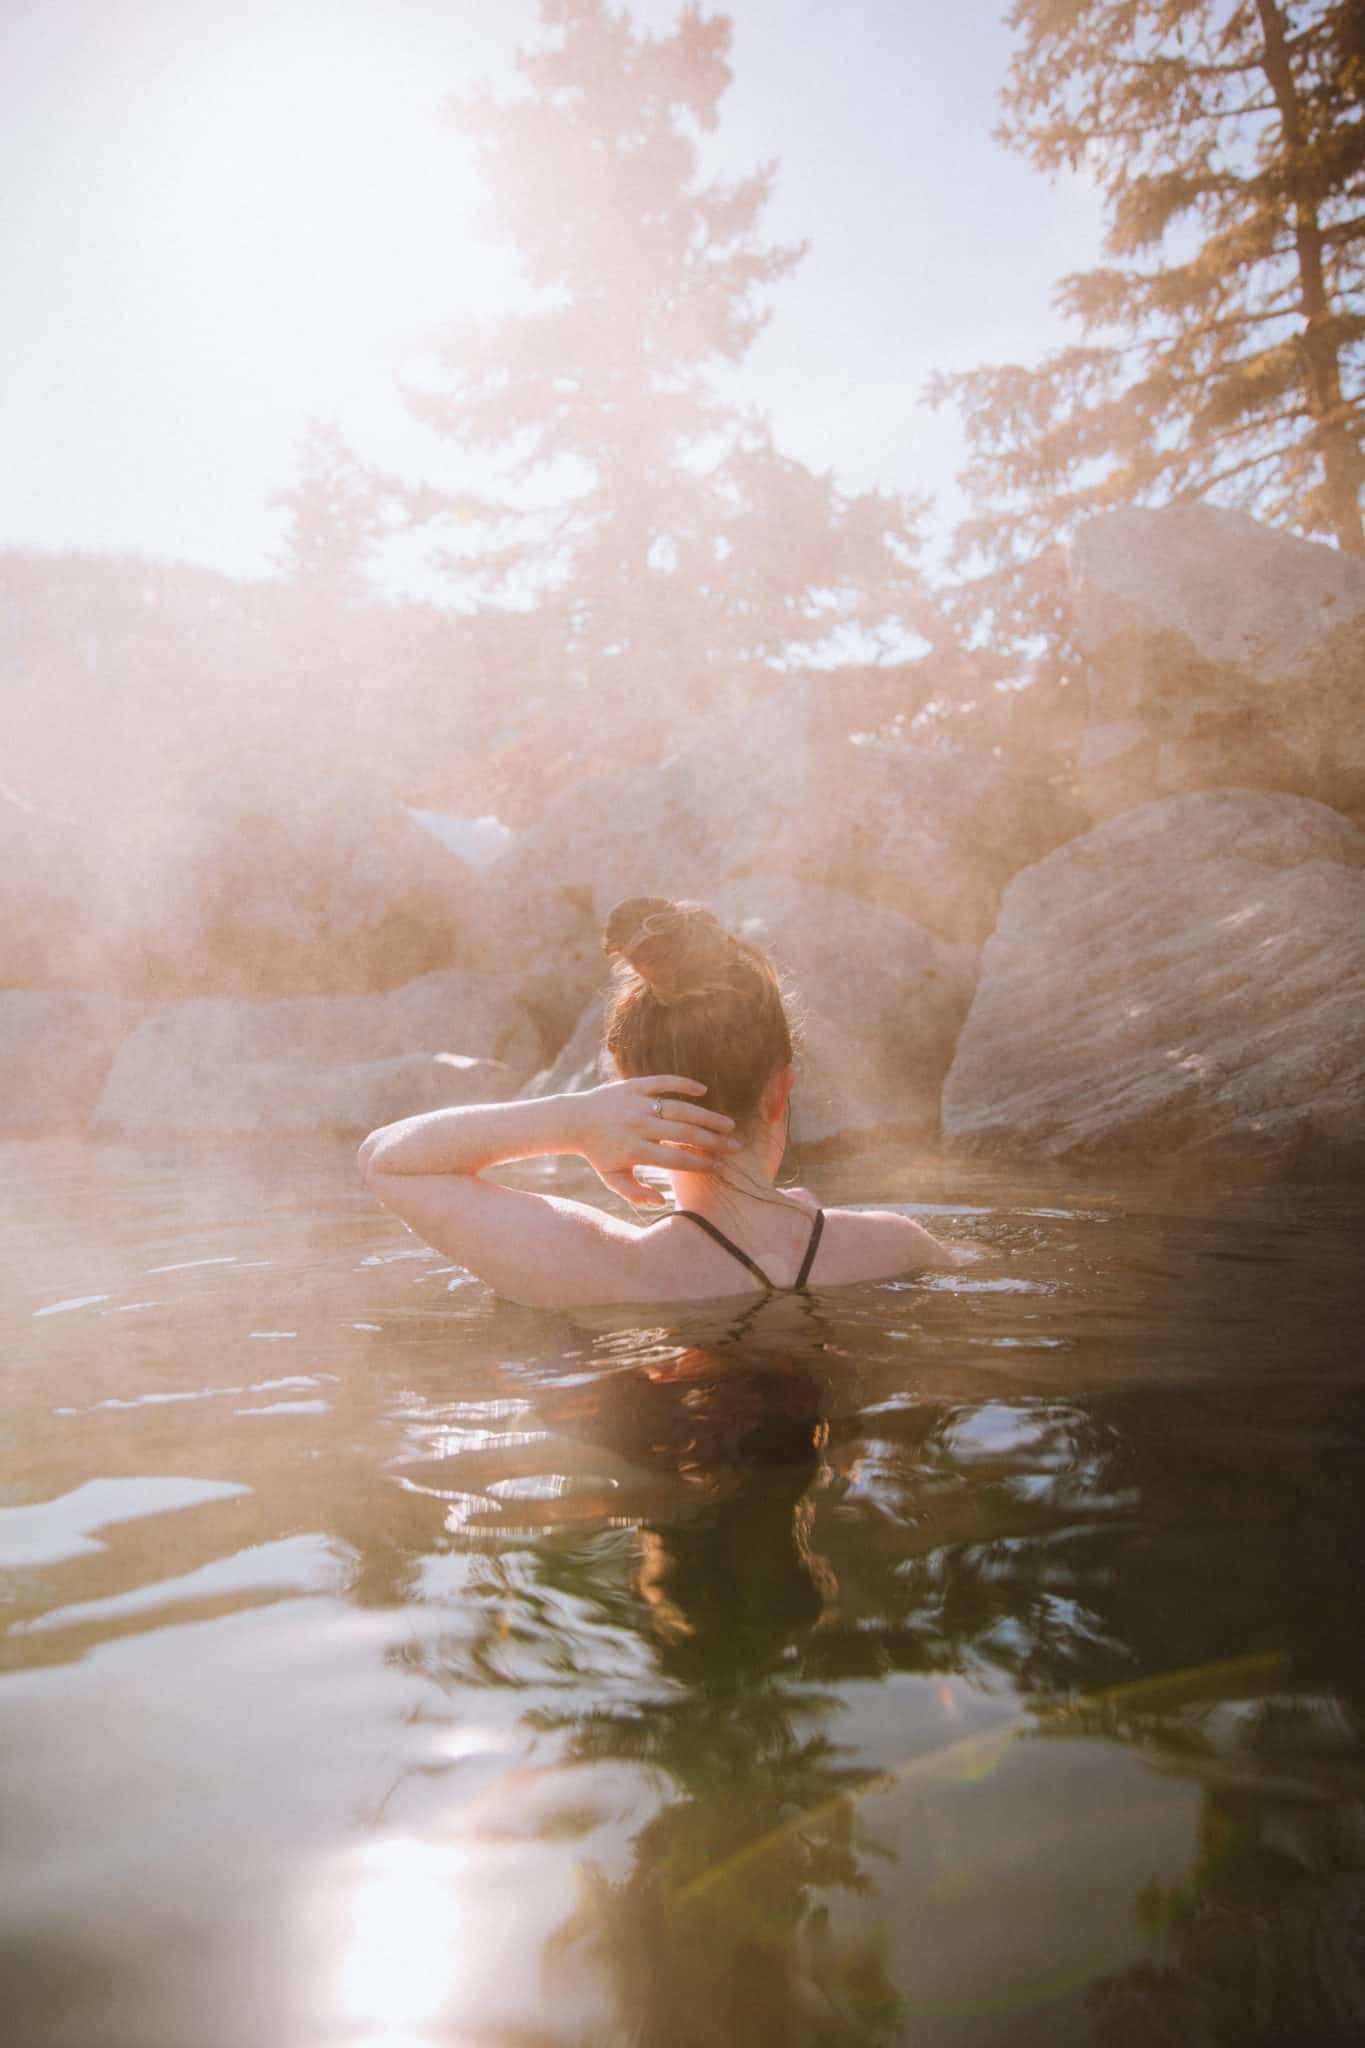 Things To Do In Fairbanks - Chena Hot Springs